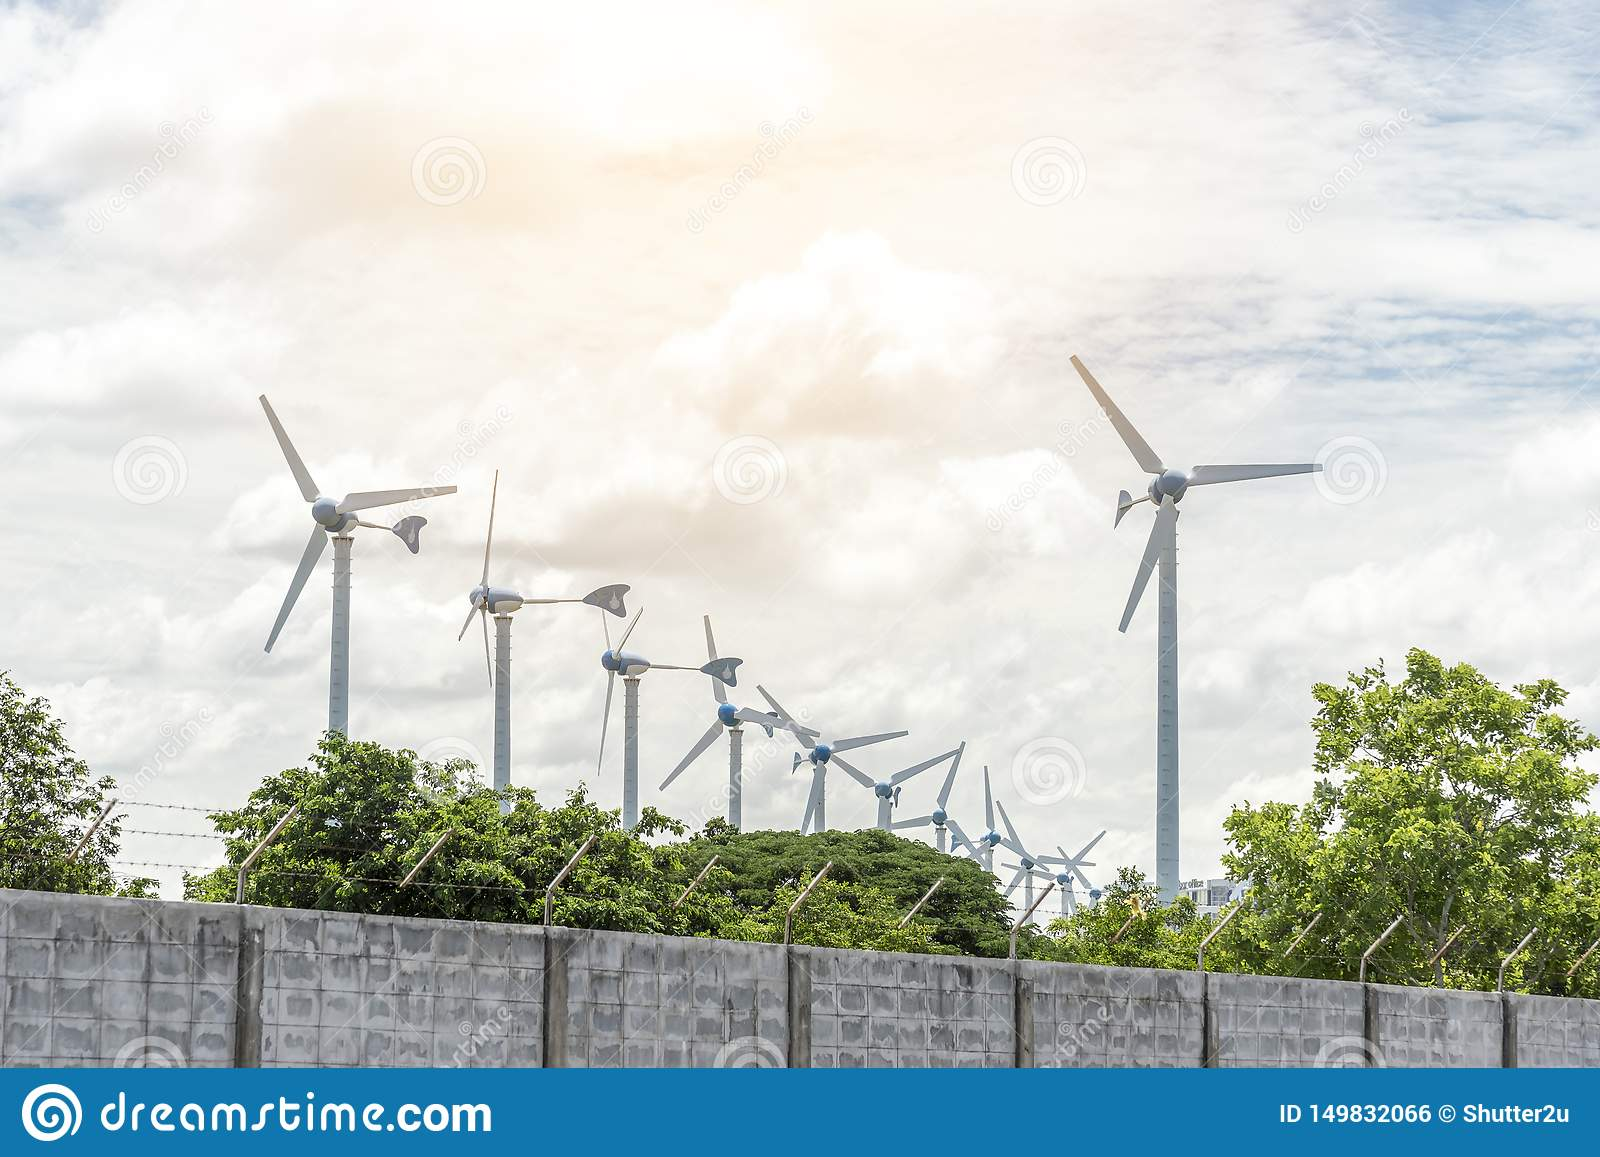 Electric wind mills for generating power fan, Technology and Nature concept